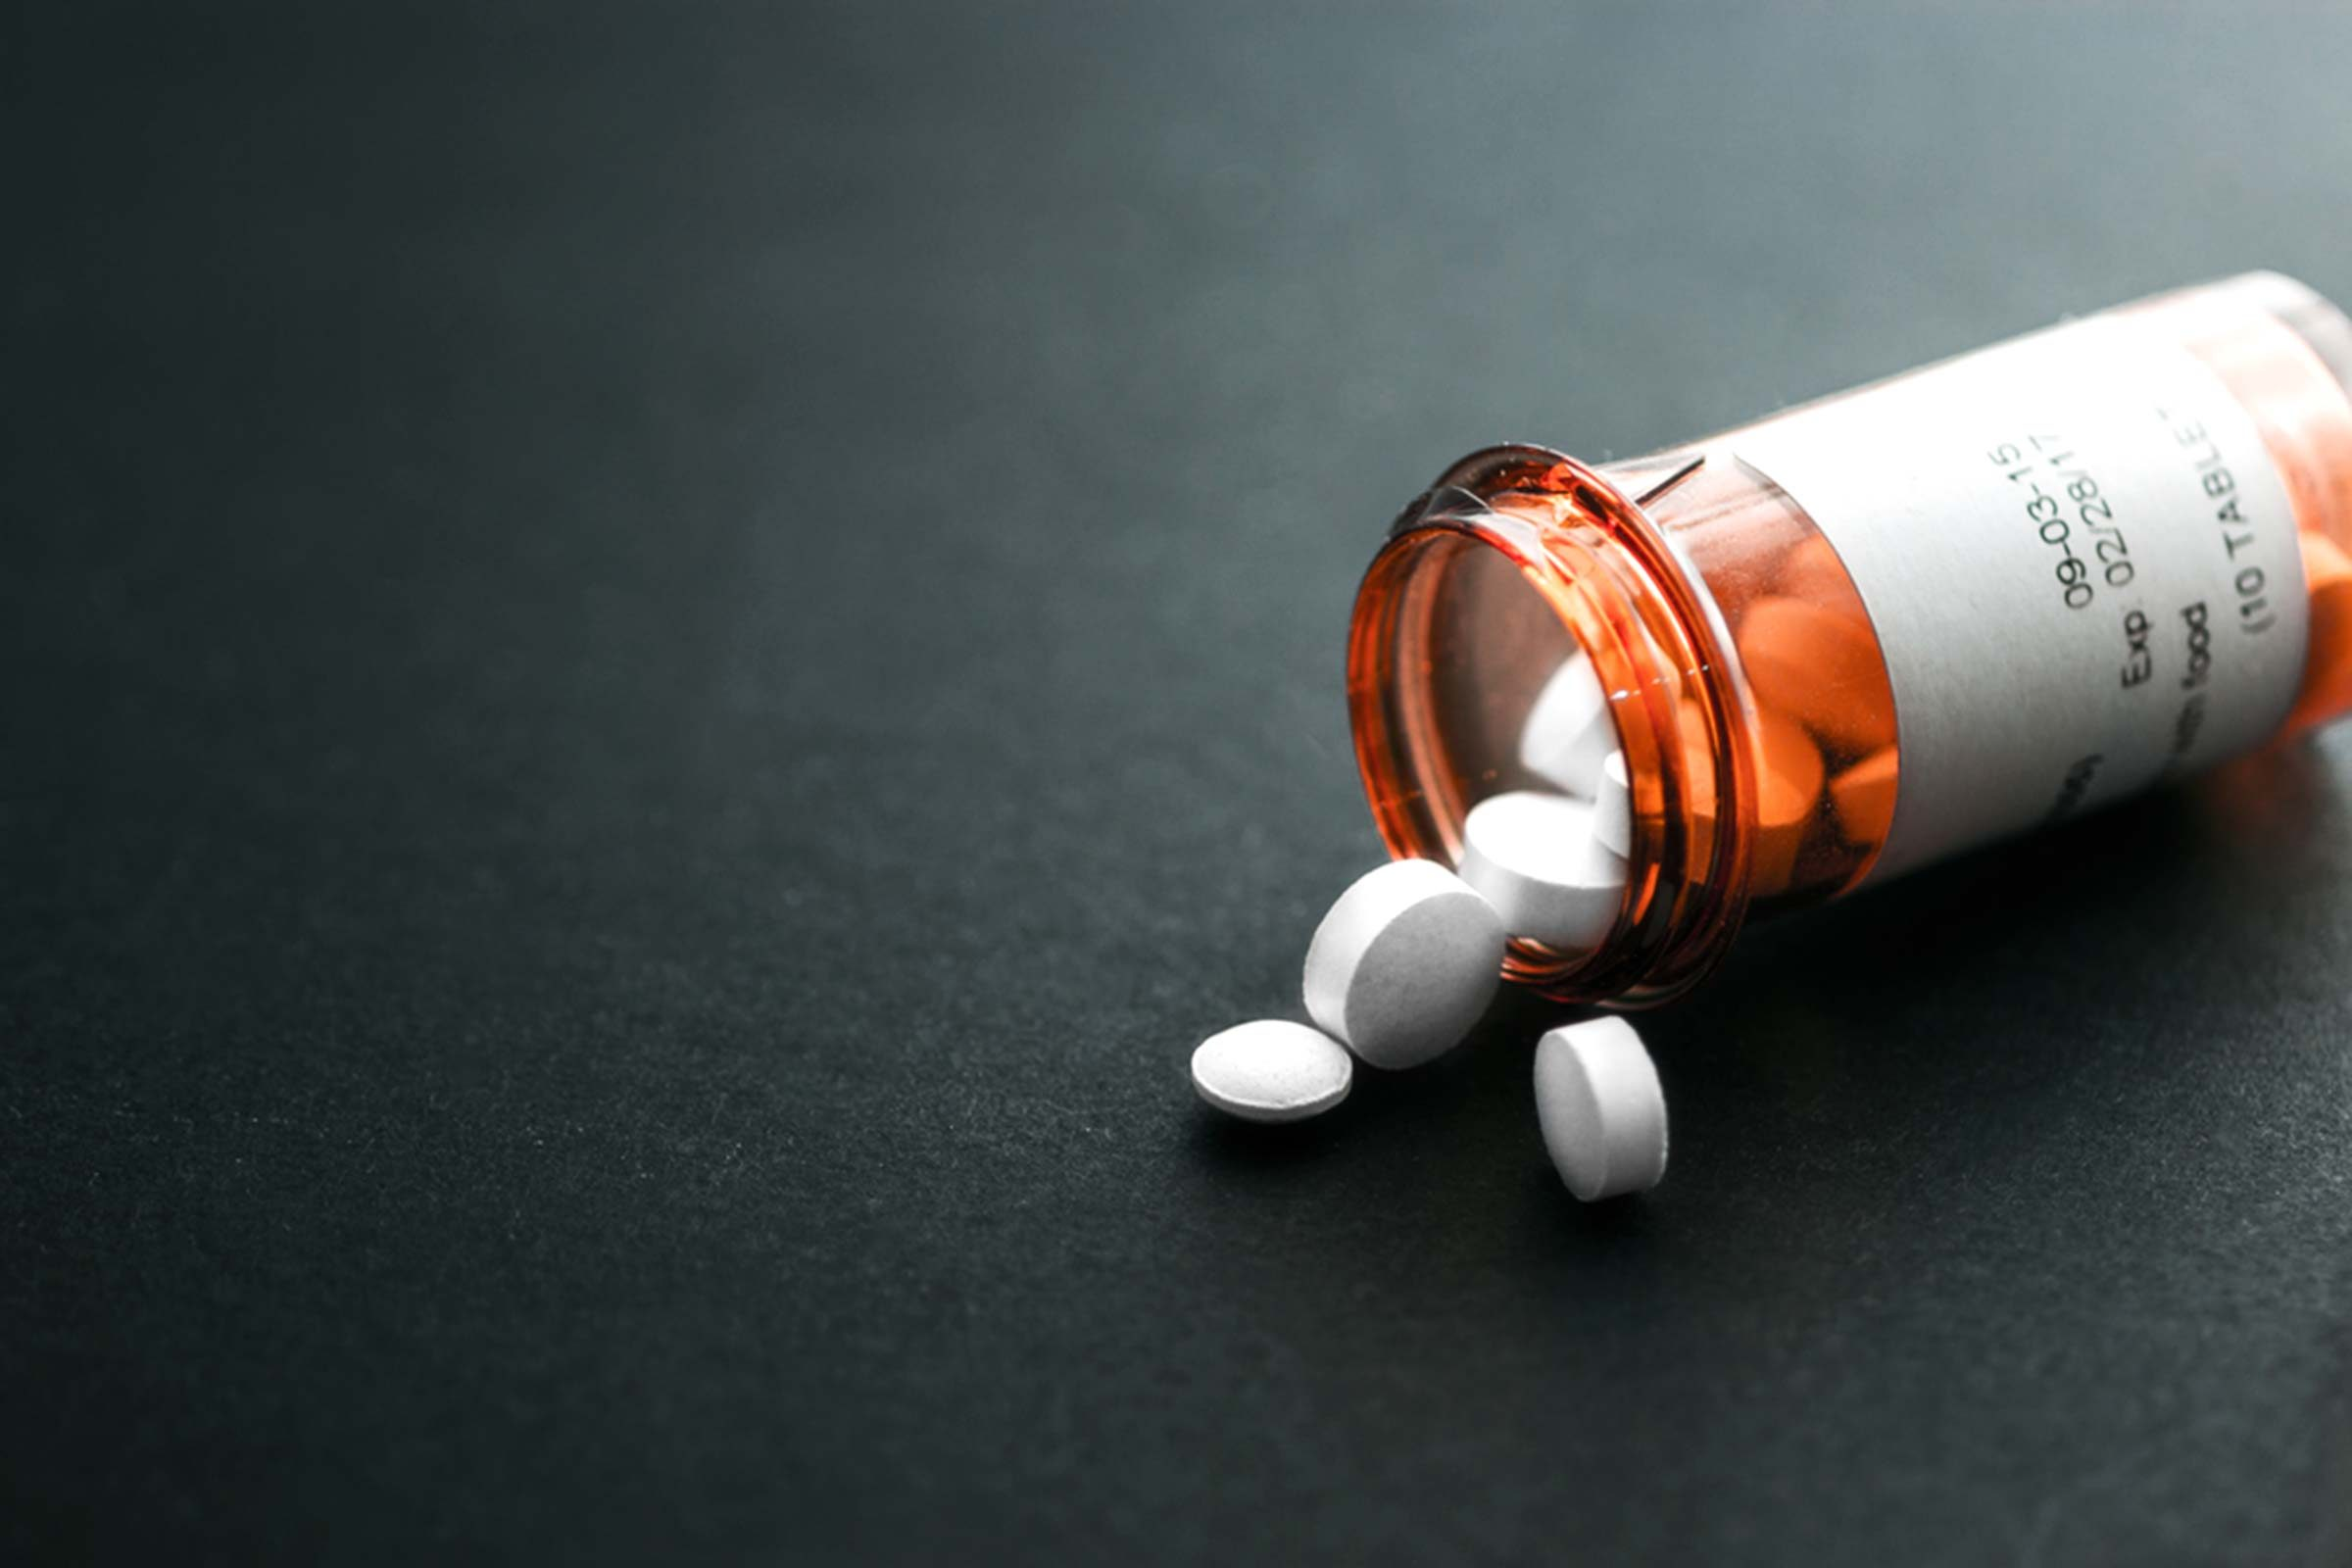 9 Medications You Should Never Stop Taking Abruptly